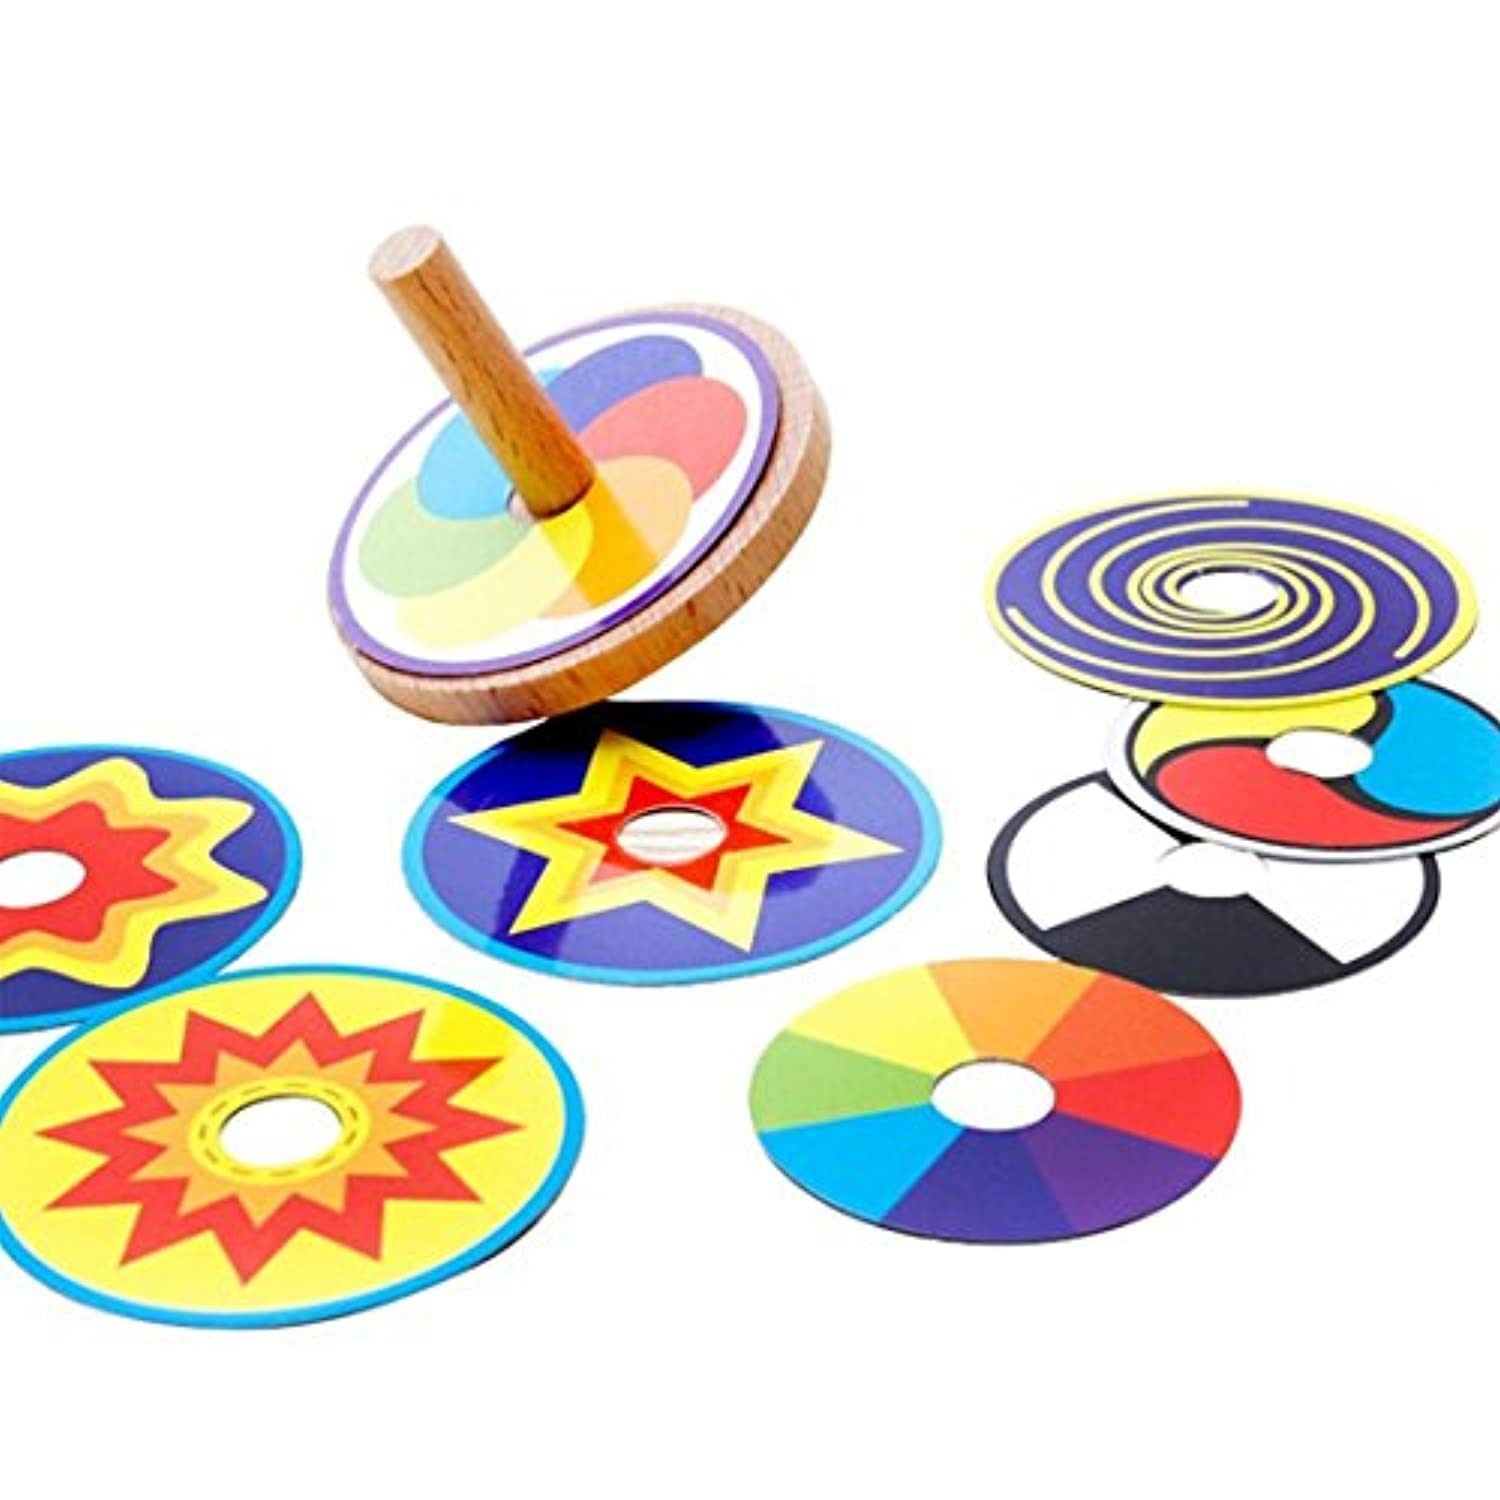 Kids Toy Wood Spinning Top Classic Toy Montessori Colourful 8 Drawing Card Sticker Early Educational Beech